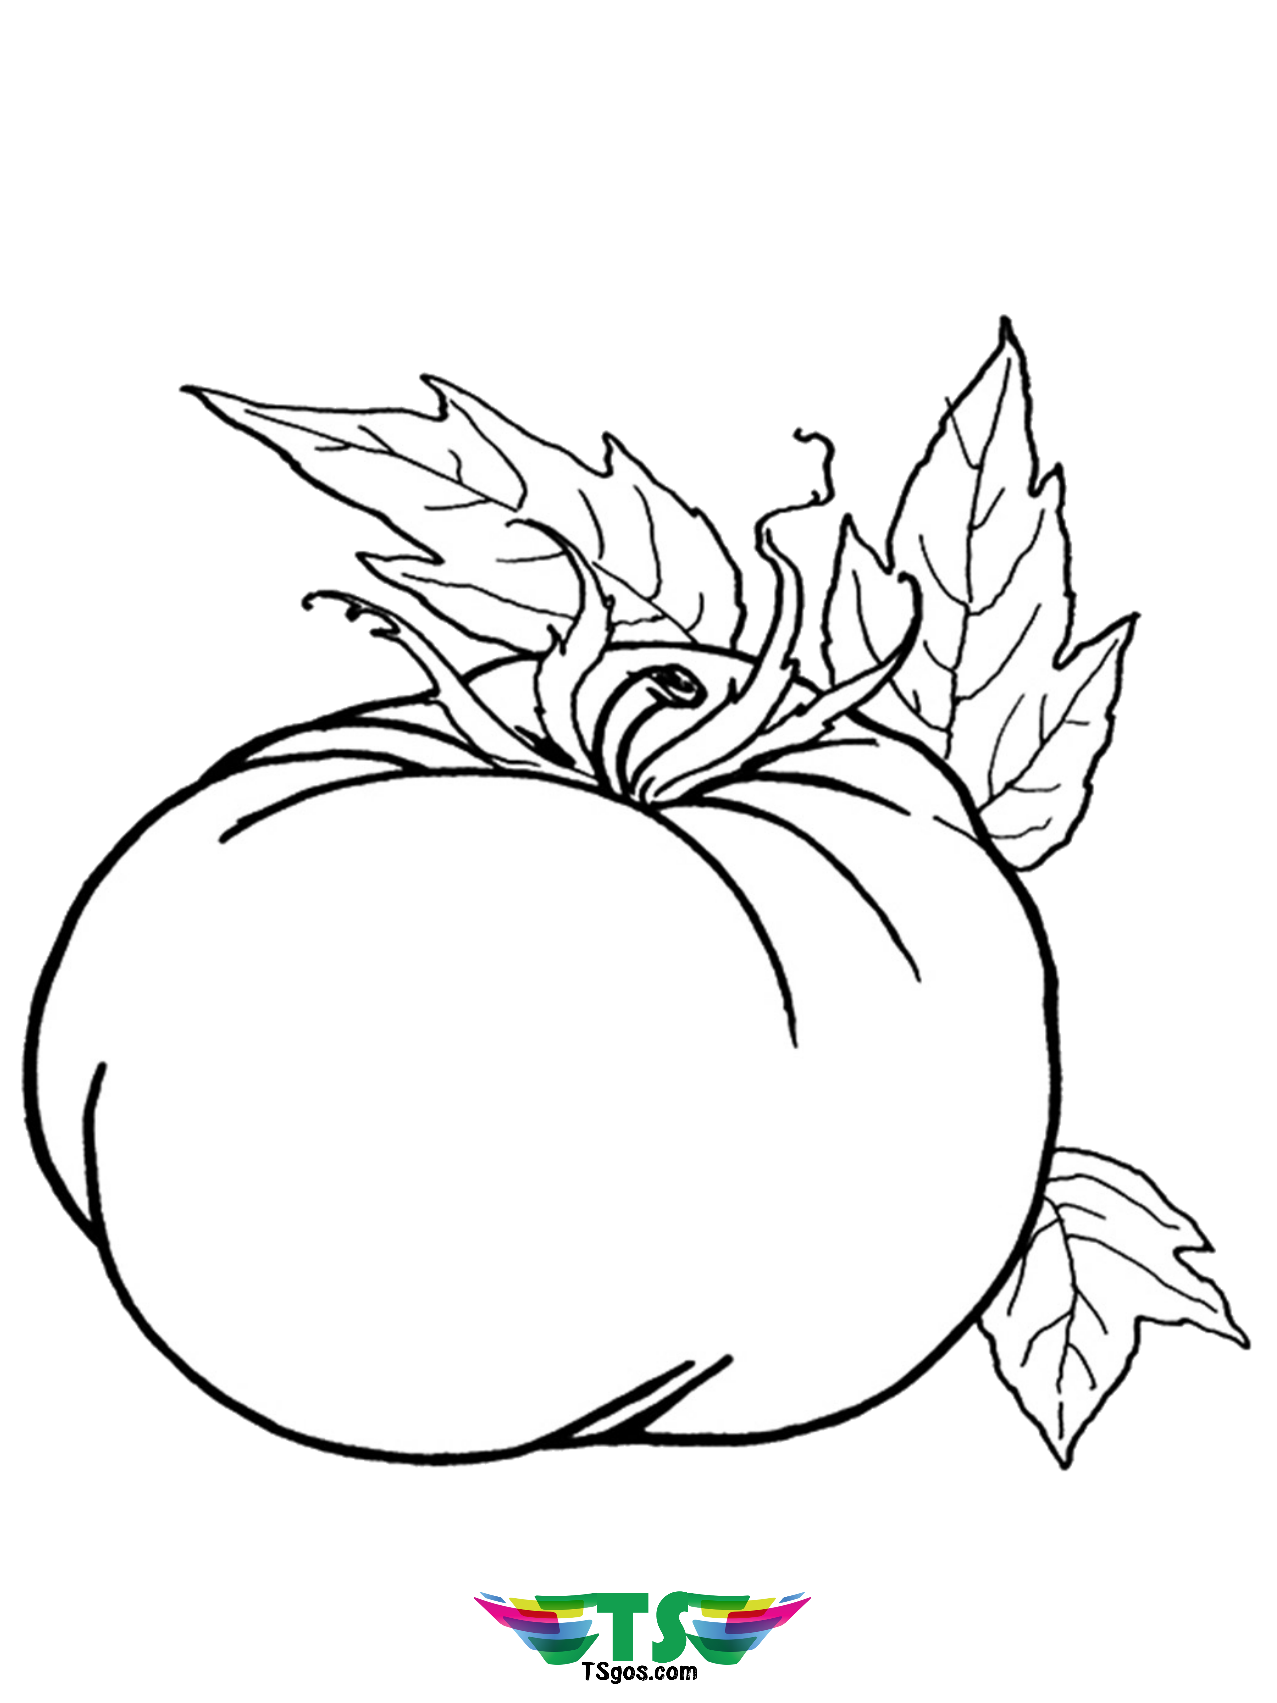 coloring fruits and vegetables images fruits and vegetables coloring pages for kids printable vegetables coloring and fruits images